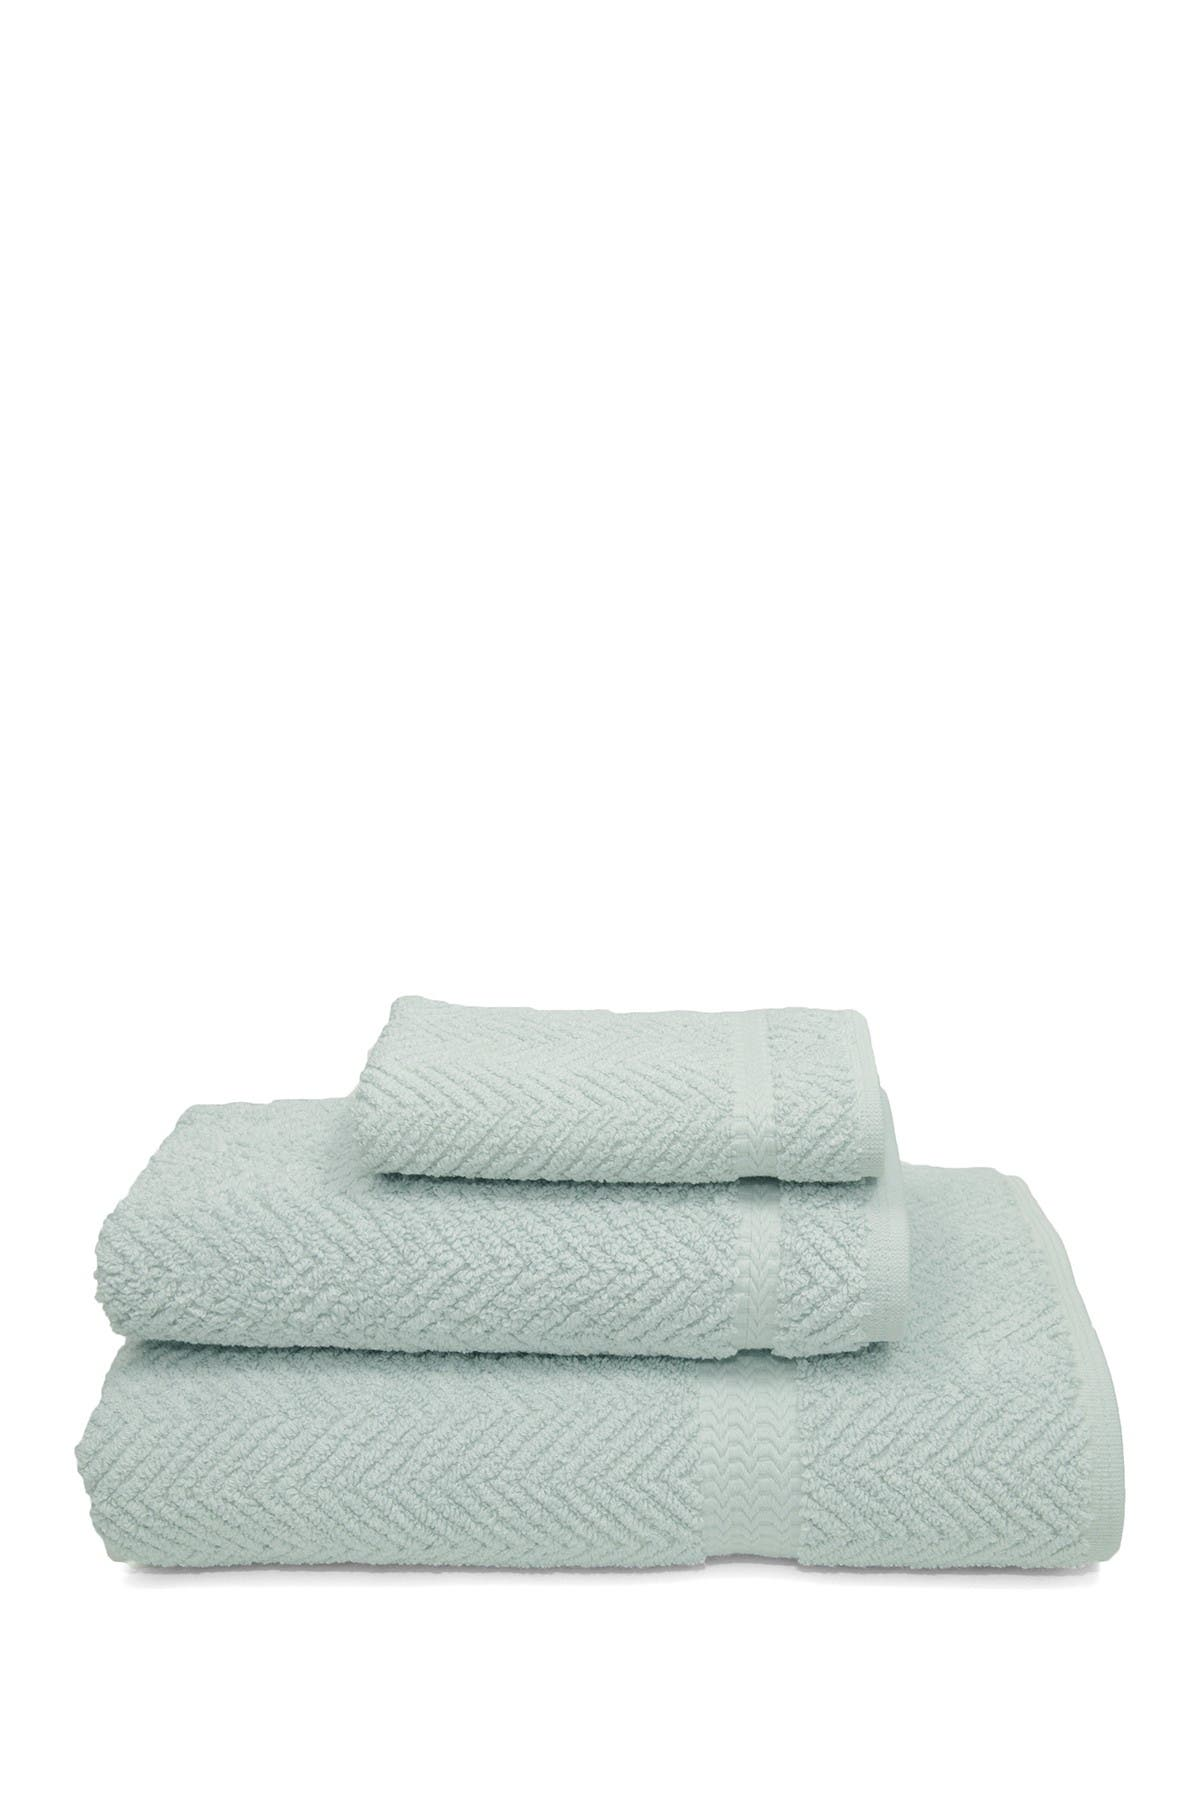 Image of LINUM HOME Aqua Blue Herringbone 3-Piece Towel Set